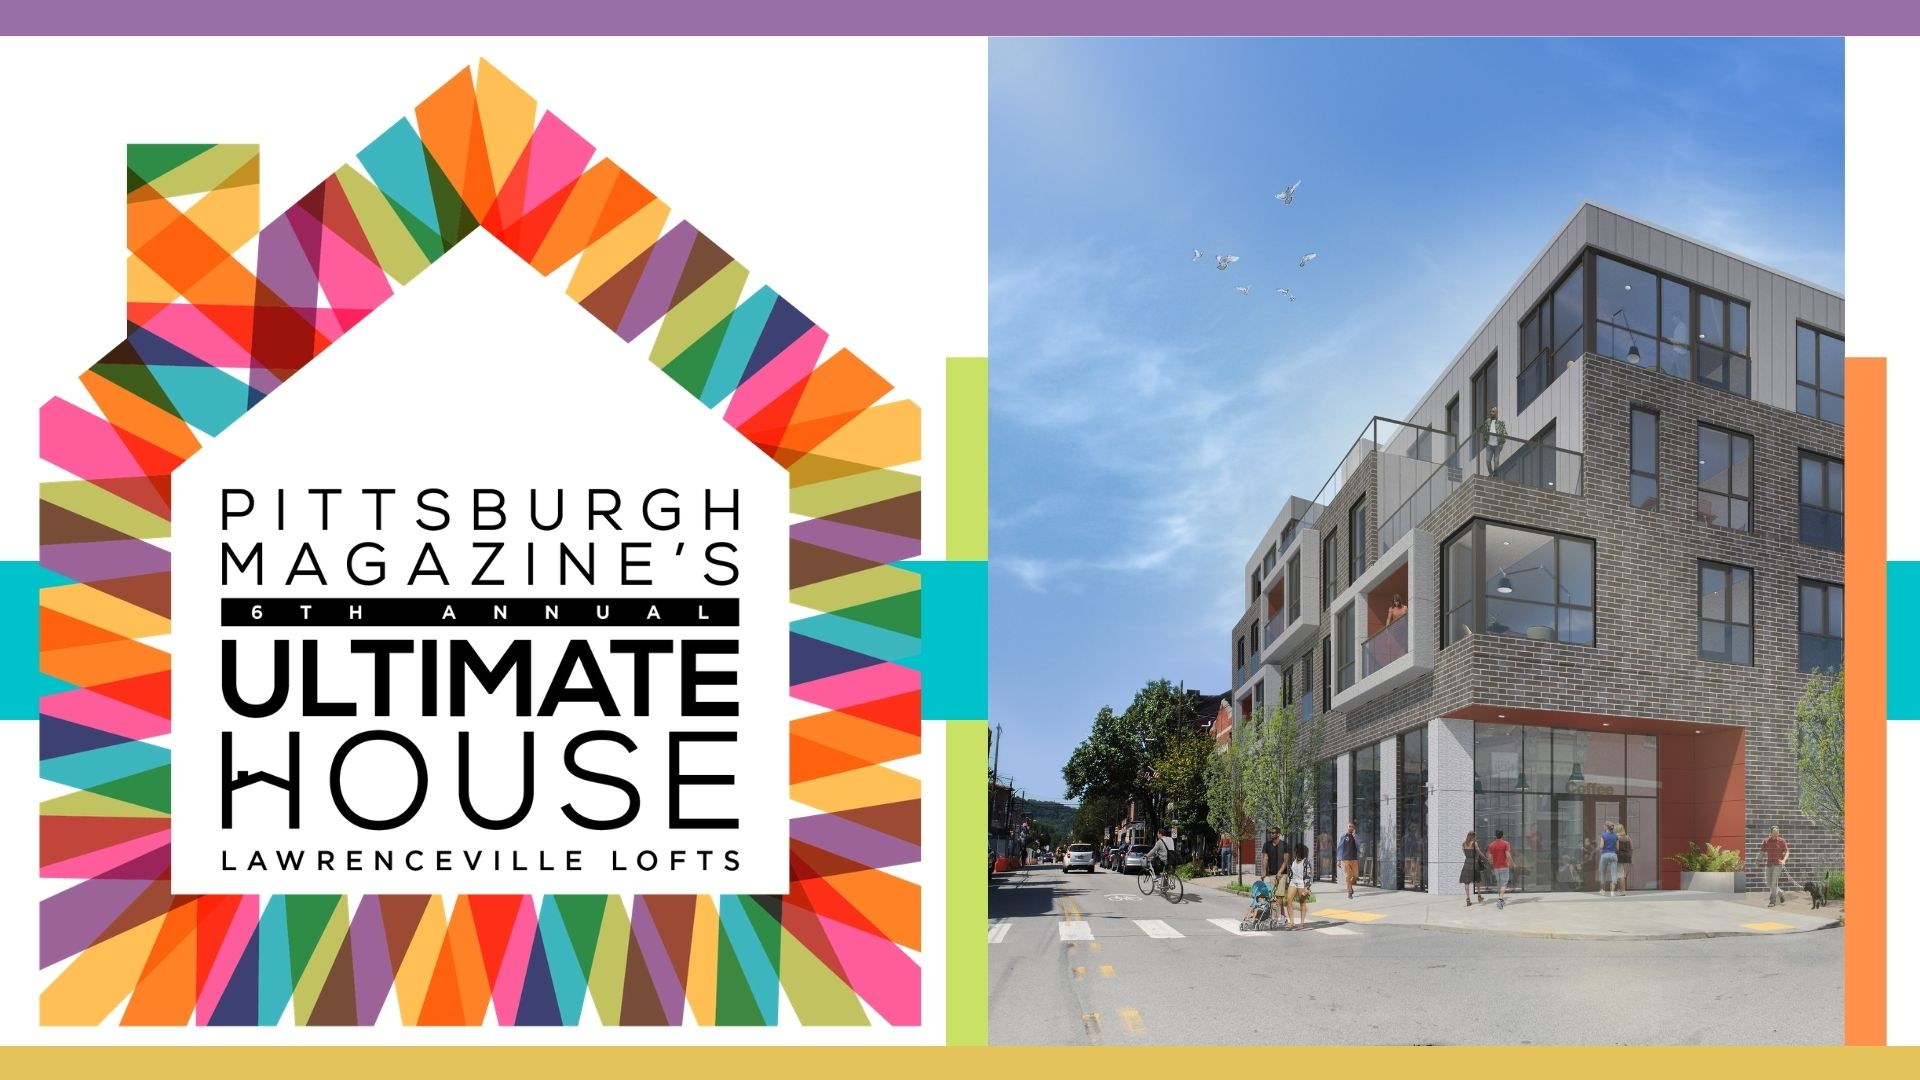 Tickets for Pittsburgh Magazine's Ultimate House 2017 in Cranberry Township from ShowClix